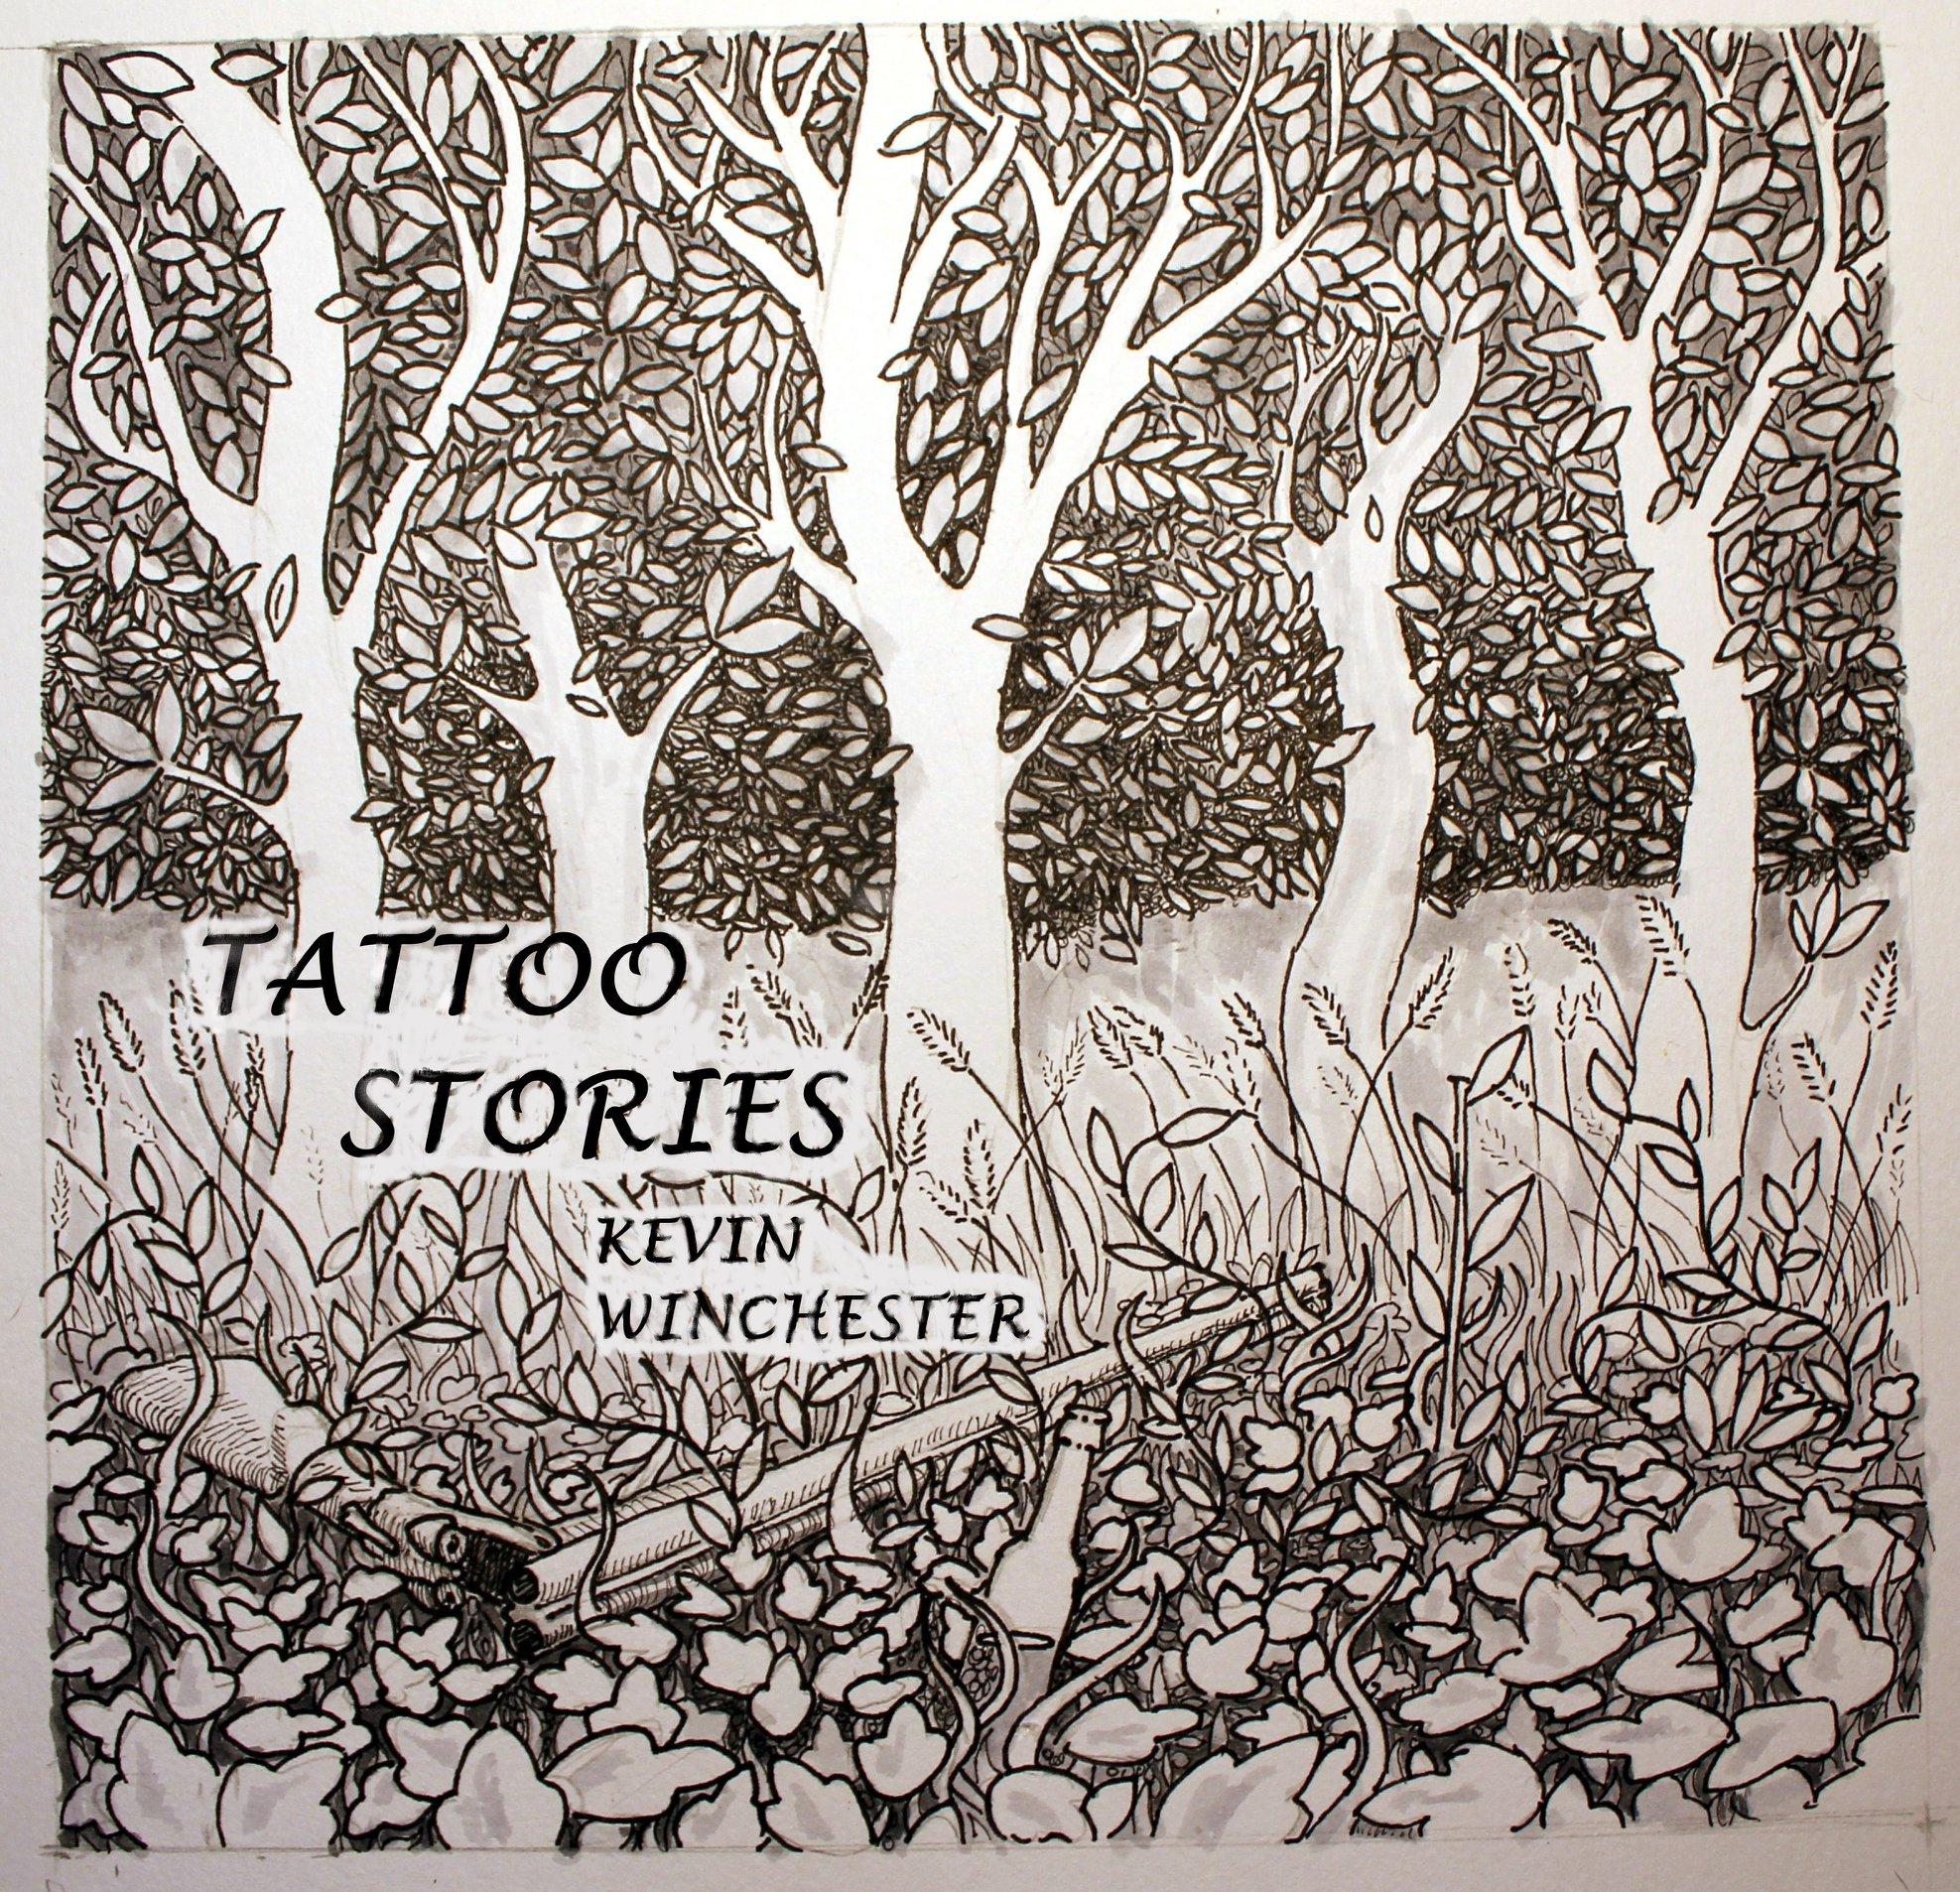 Tattoo Stories Artwork.jpg